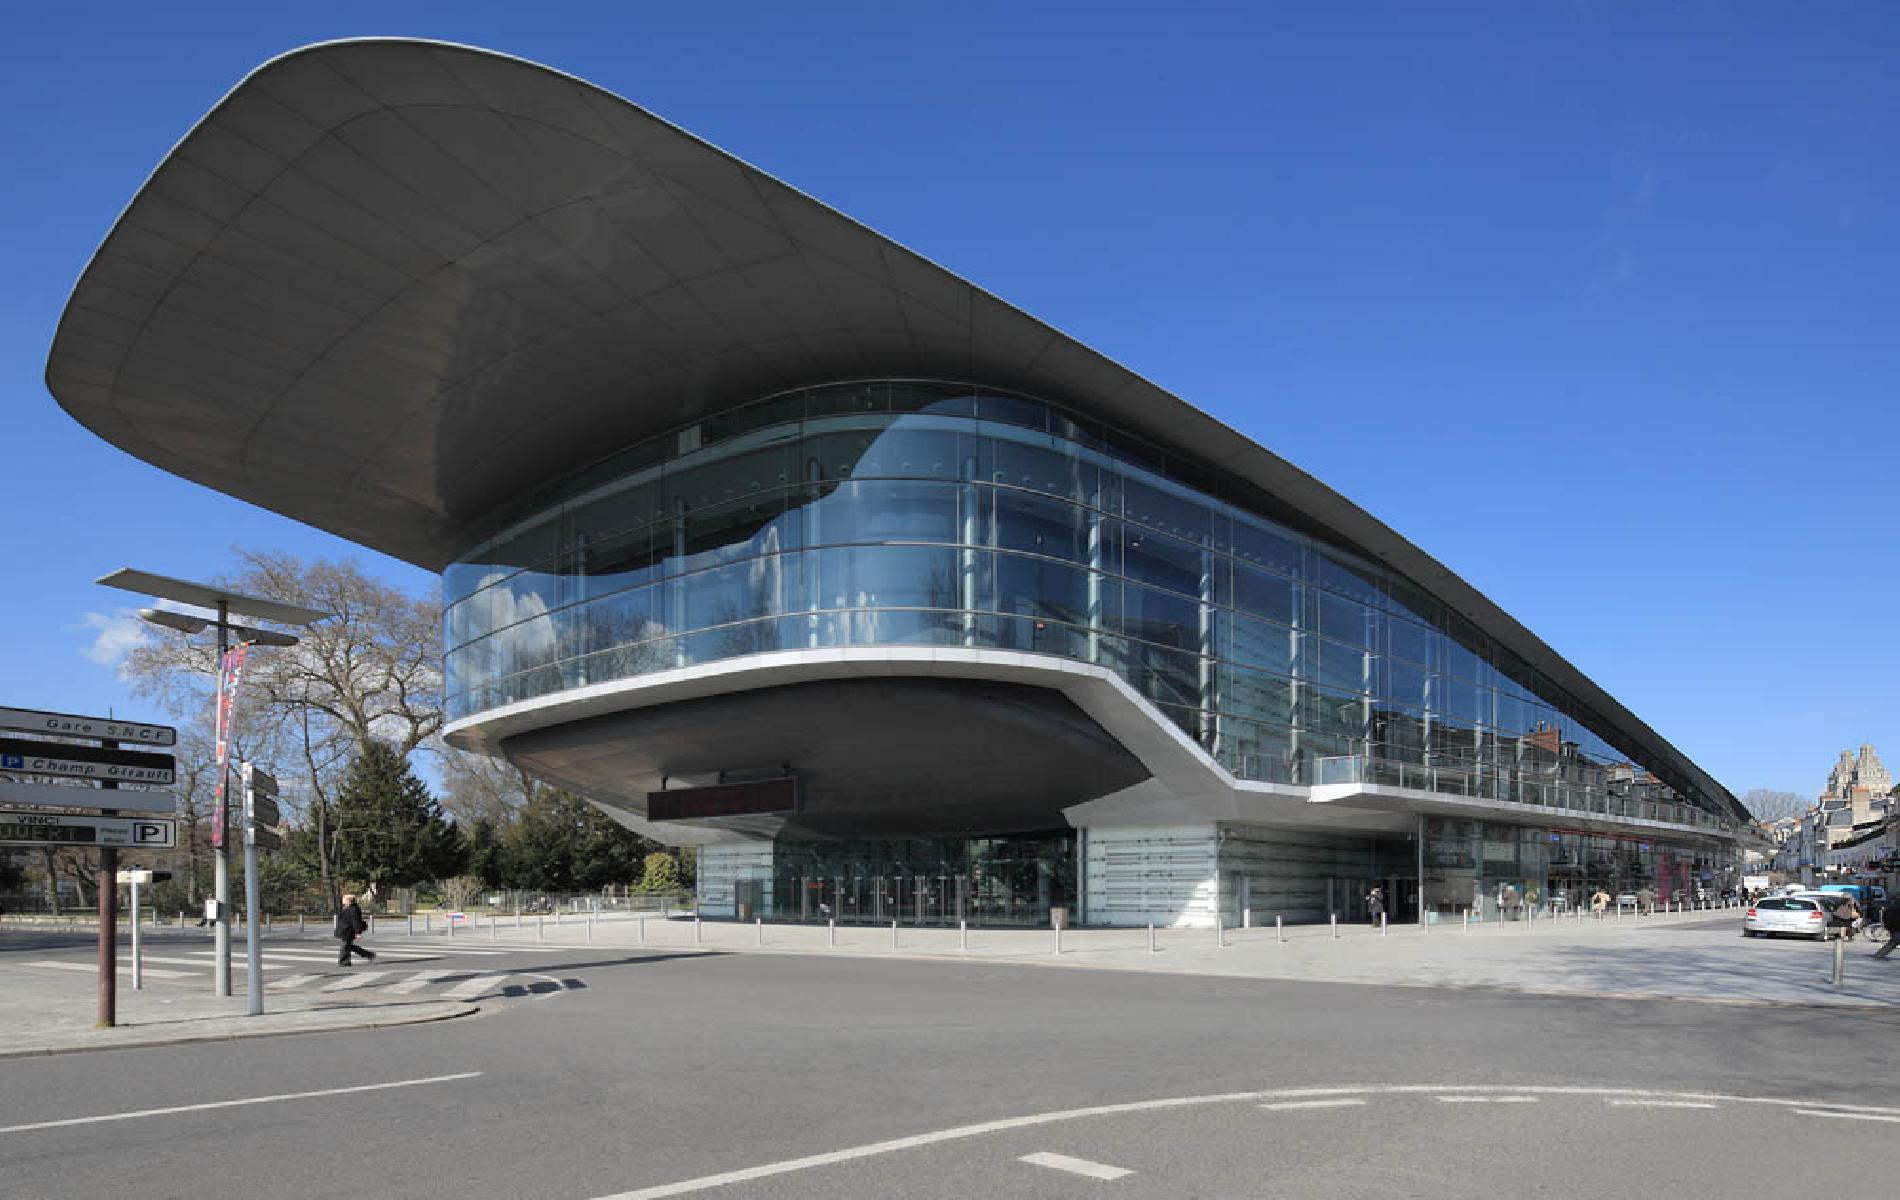 Vinci Congress center